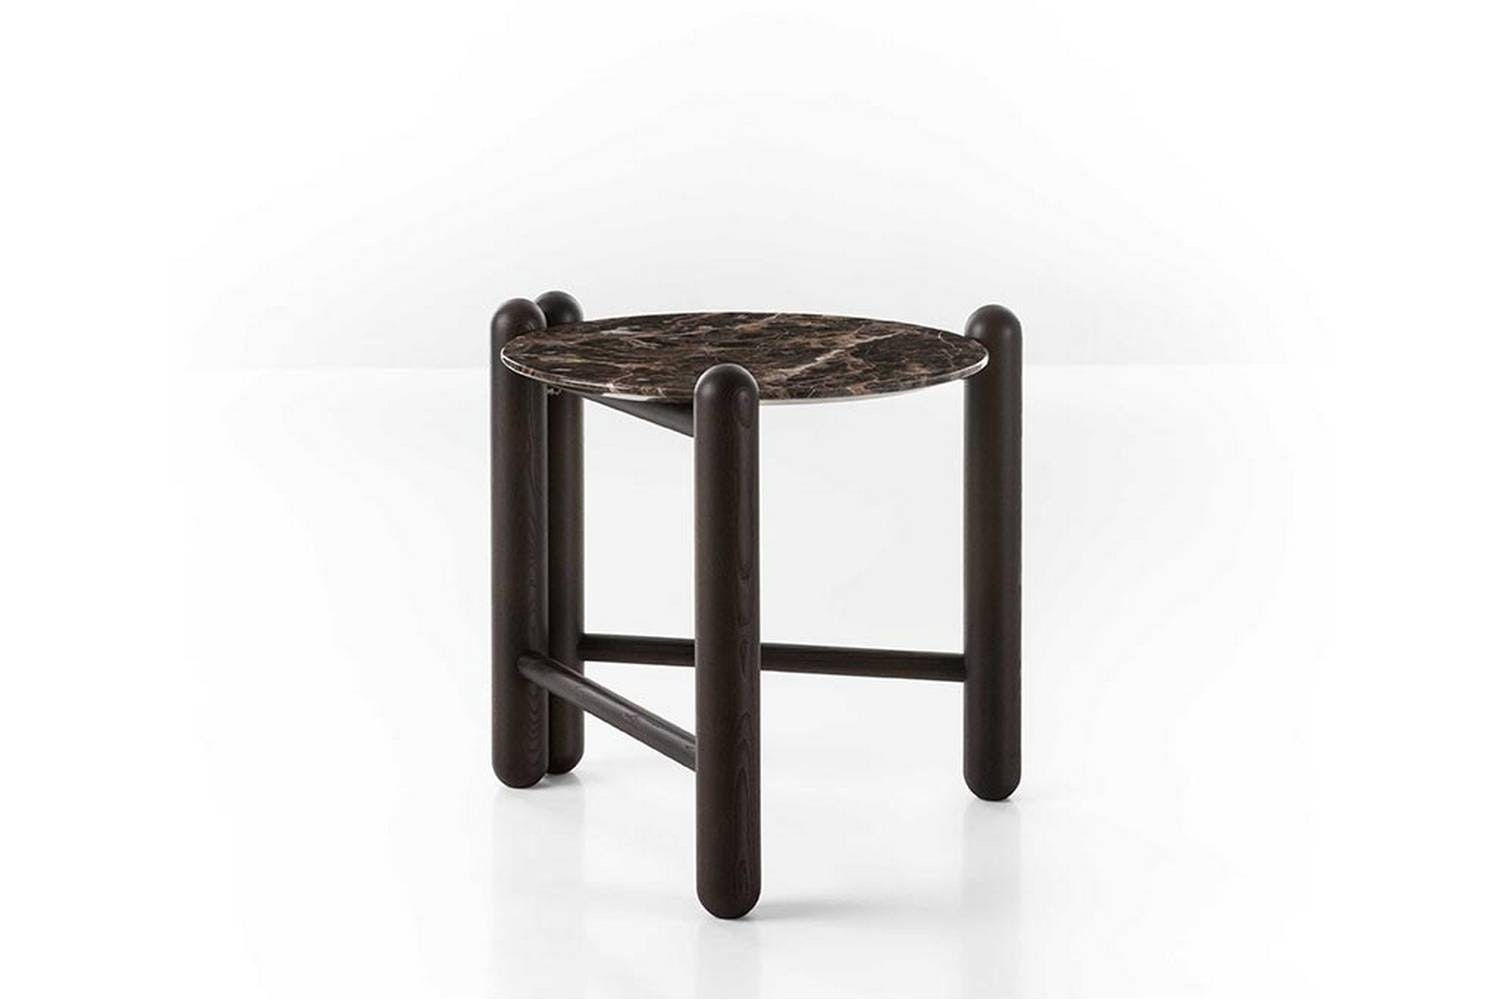 Hold On Side Table by Nicola Gallizia for Wiener GTV Design